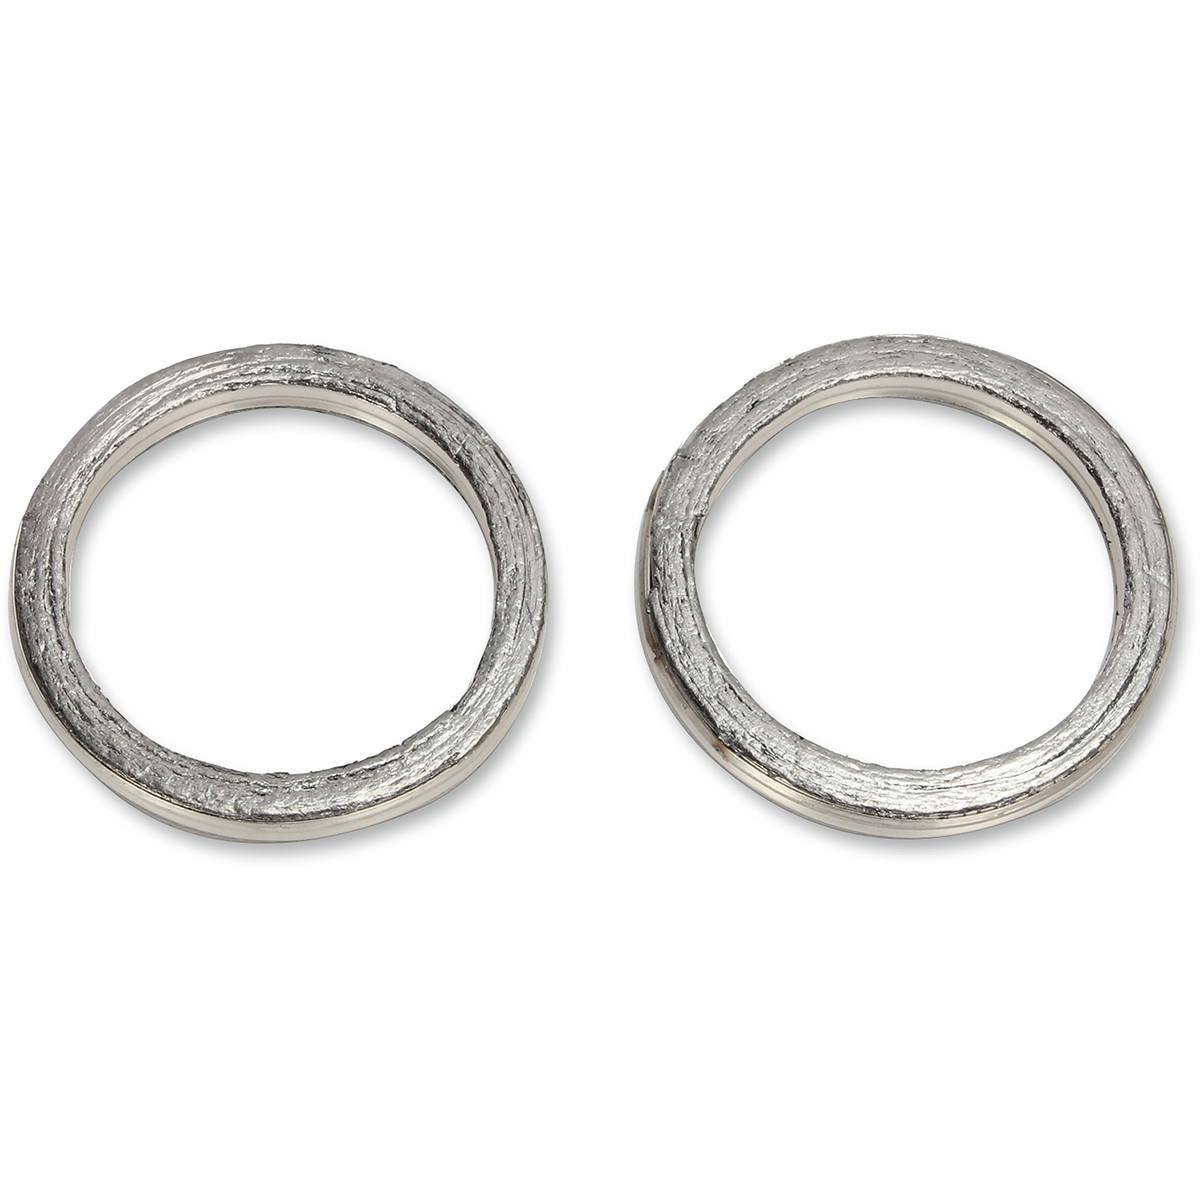 Moose Racing Exhaust Gasket Kits 0934-6034